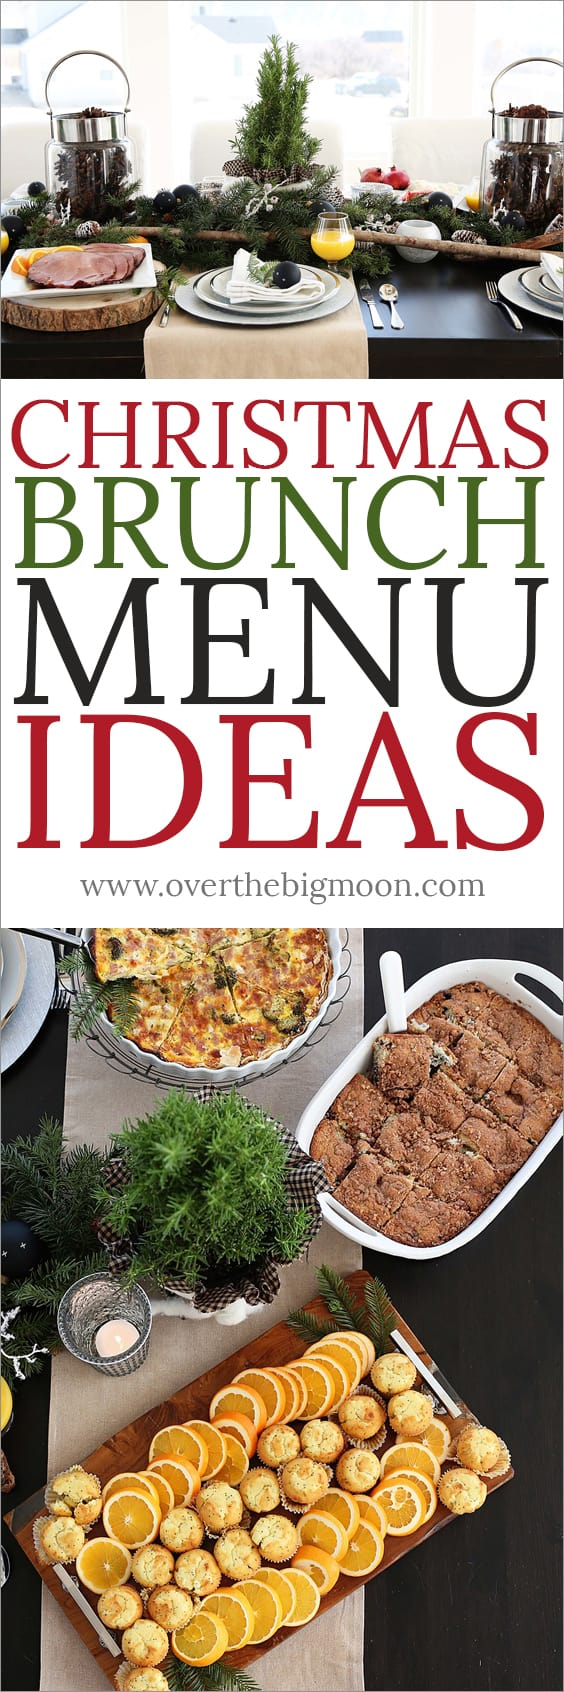 Christmas Brunch Menu Ideas to help you create the perfect Christmas meal! Have a Merry Christmas! From www.overthebigmoon.com!